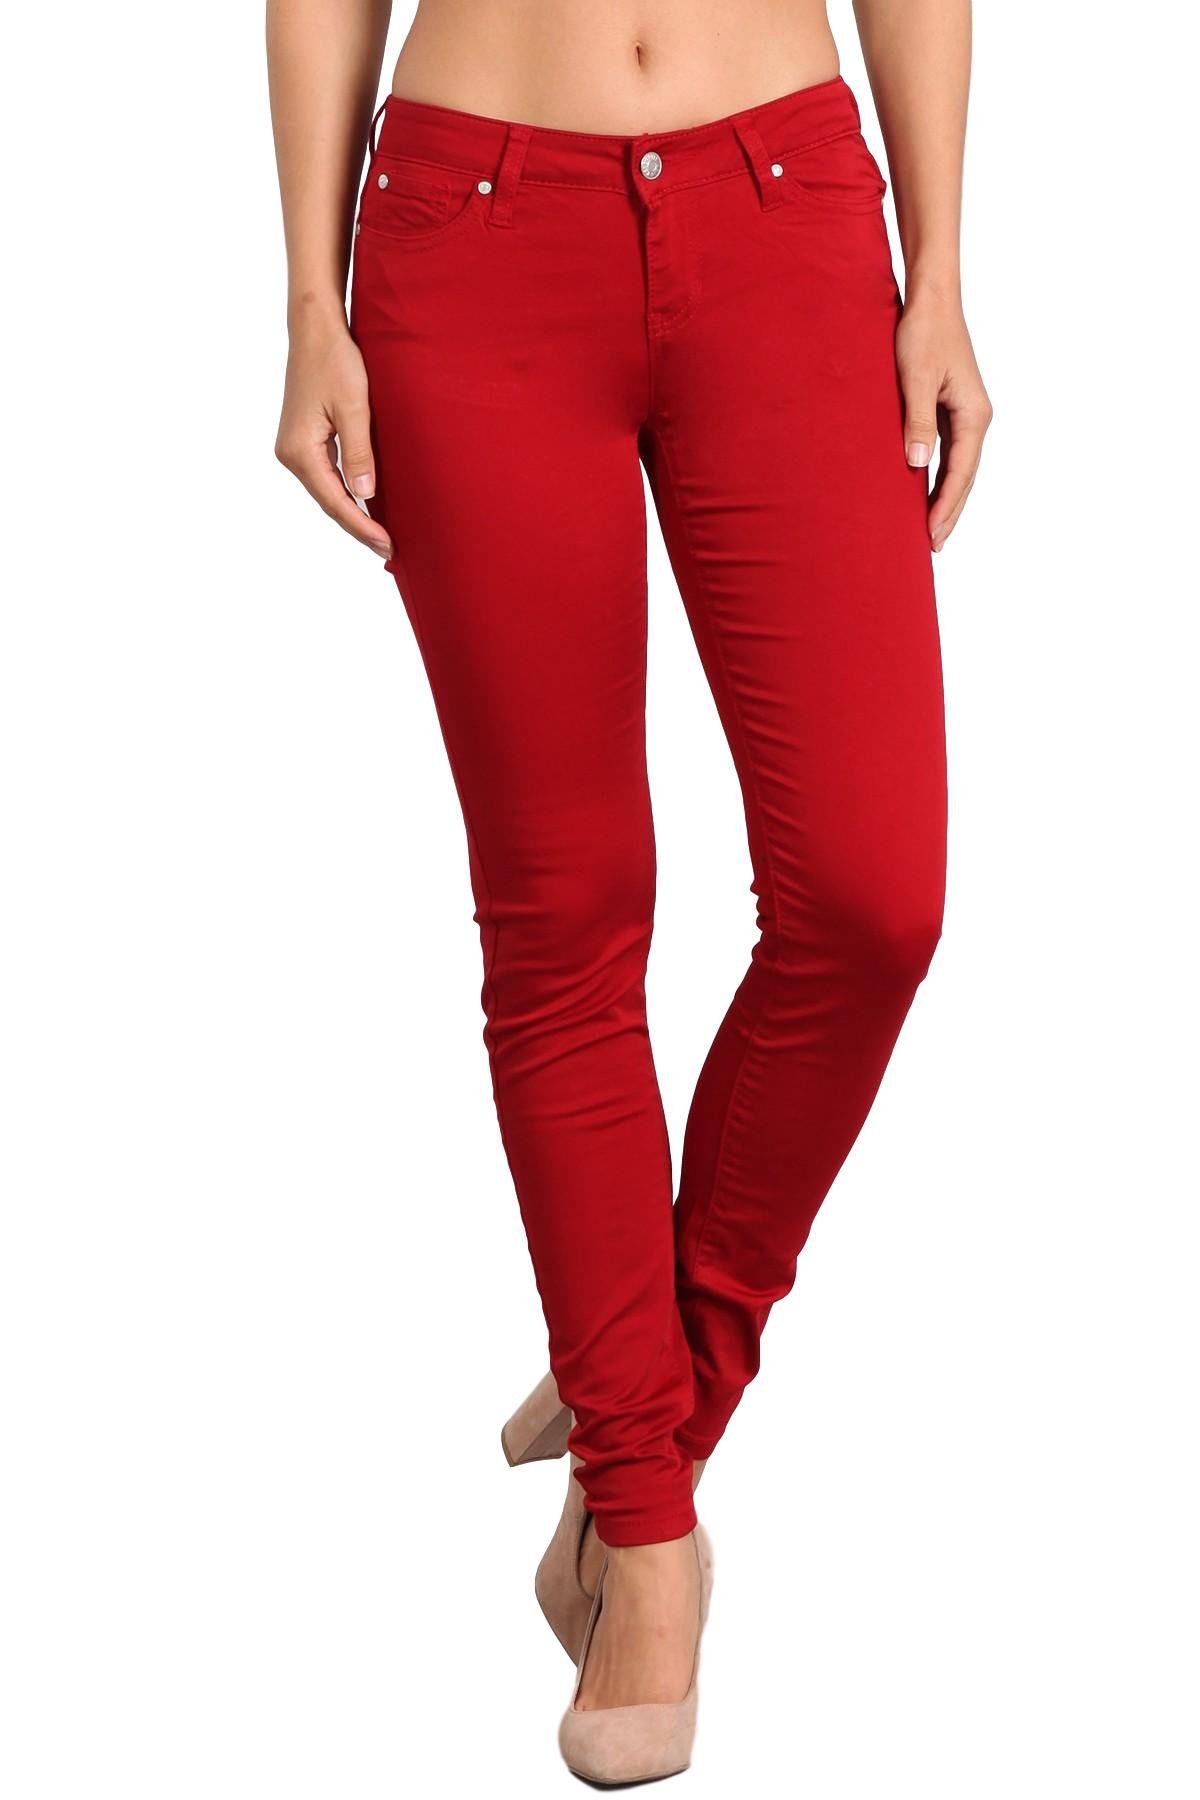 Celebrity Pink Women's Mid Rise Colored Skinny Pants CJ21038Z35 (Red Dahlia, 13/31)